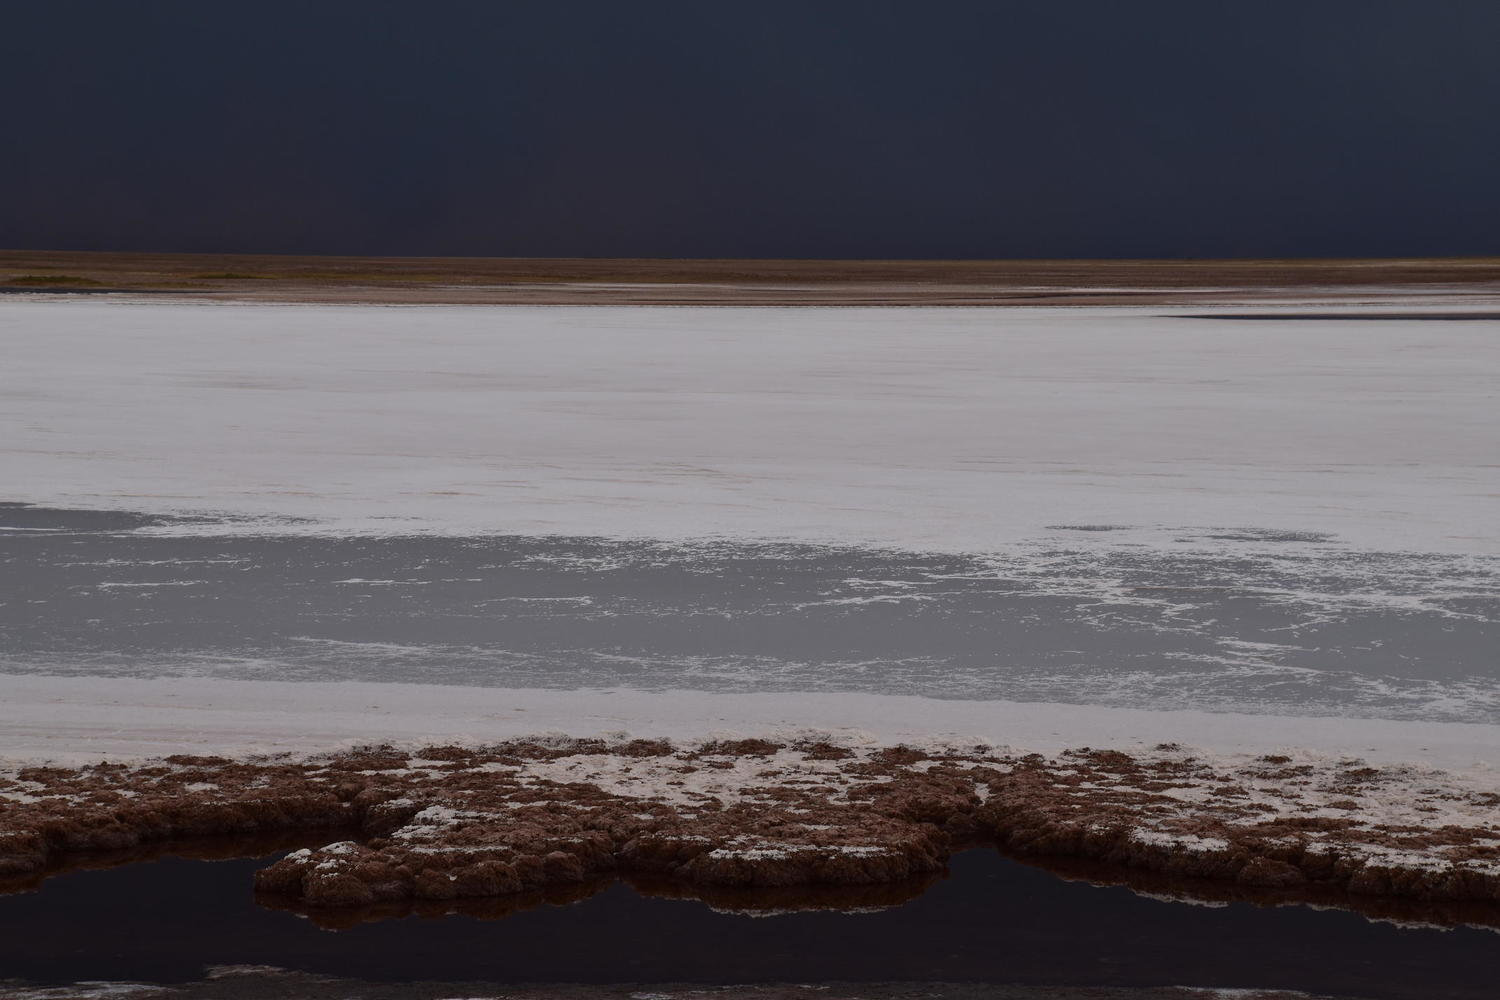 A moody shot of the Atacama Salt Flat in northern Chile